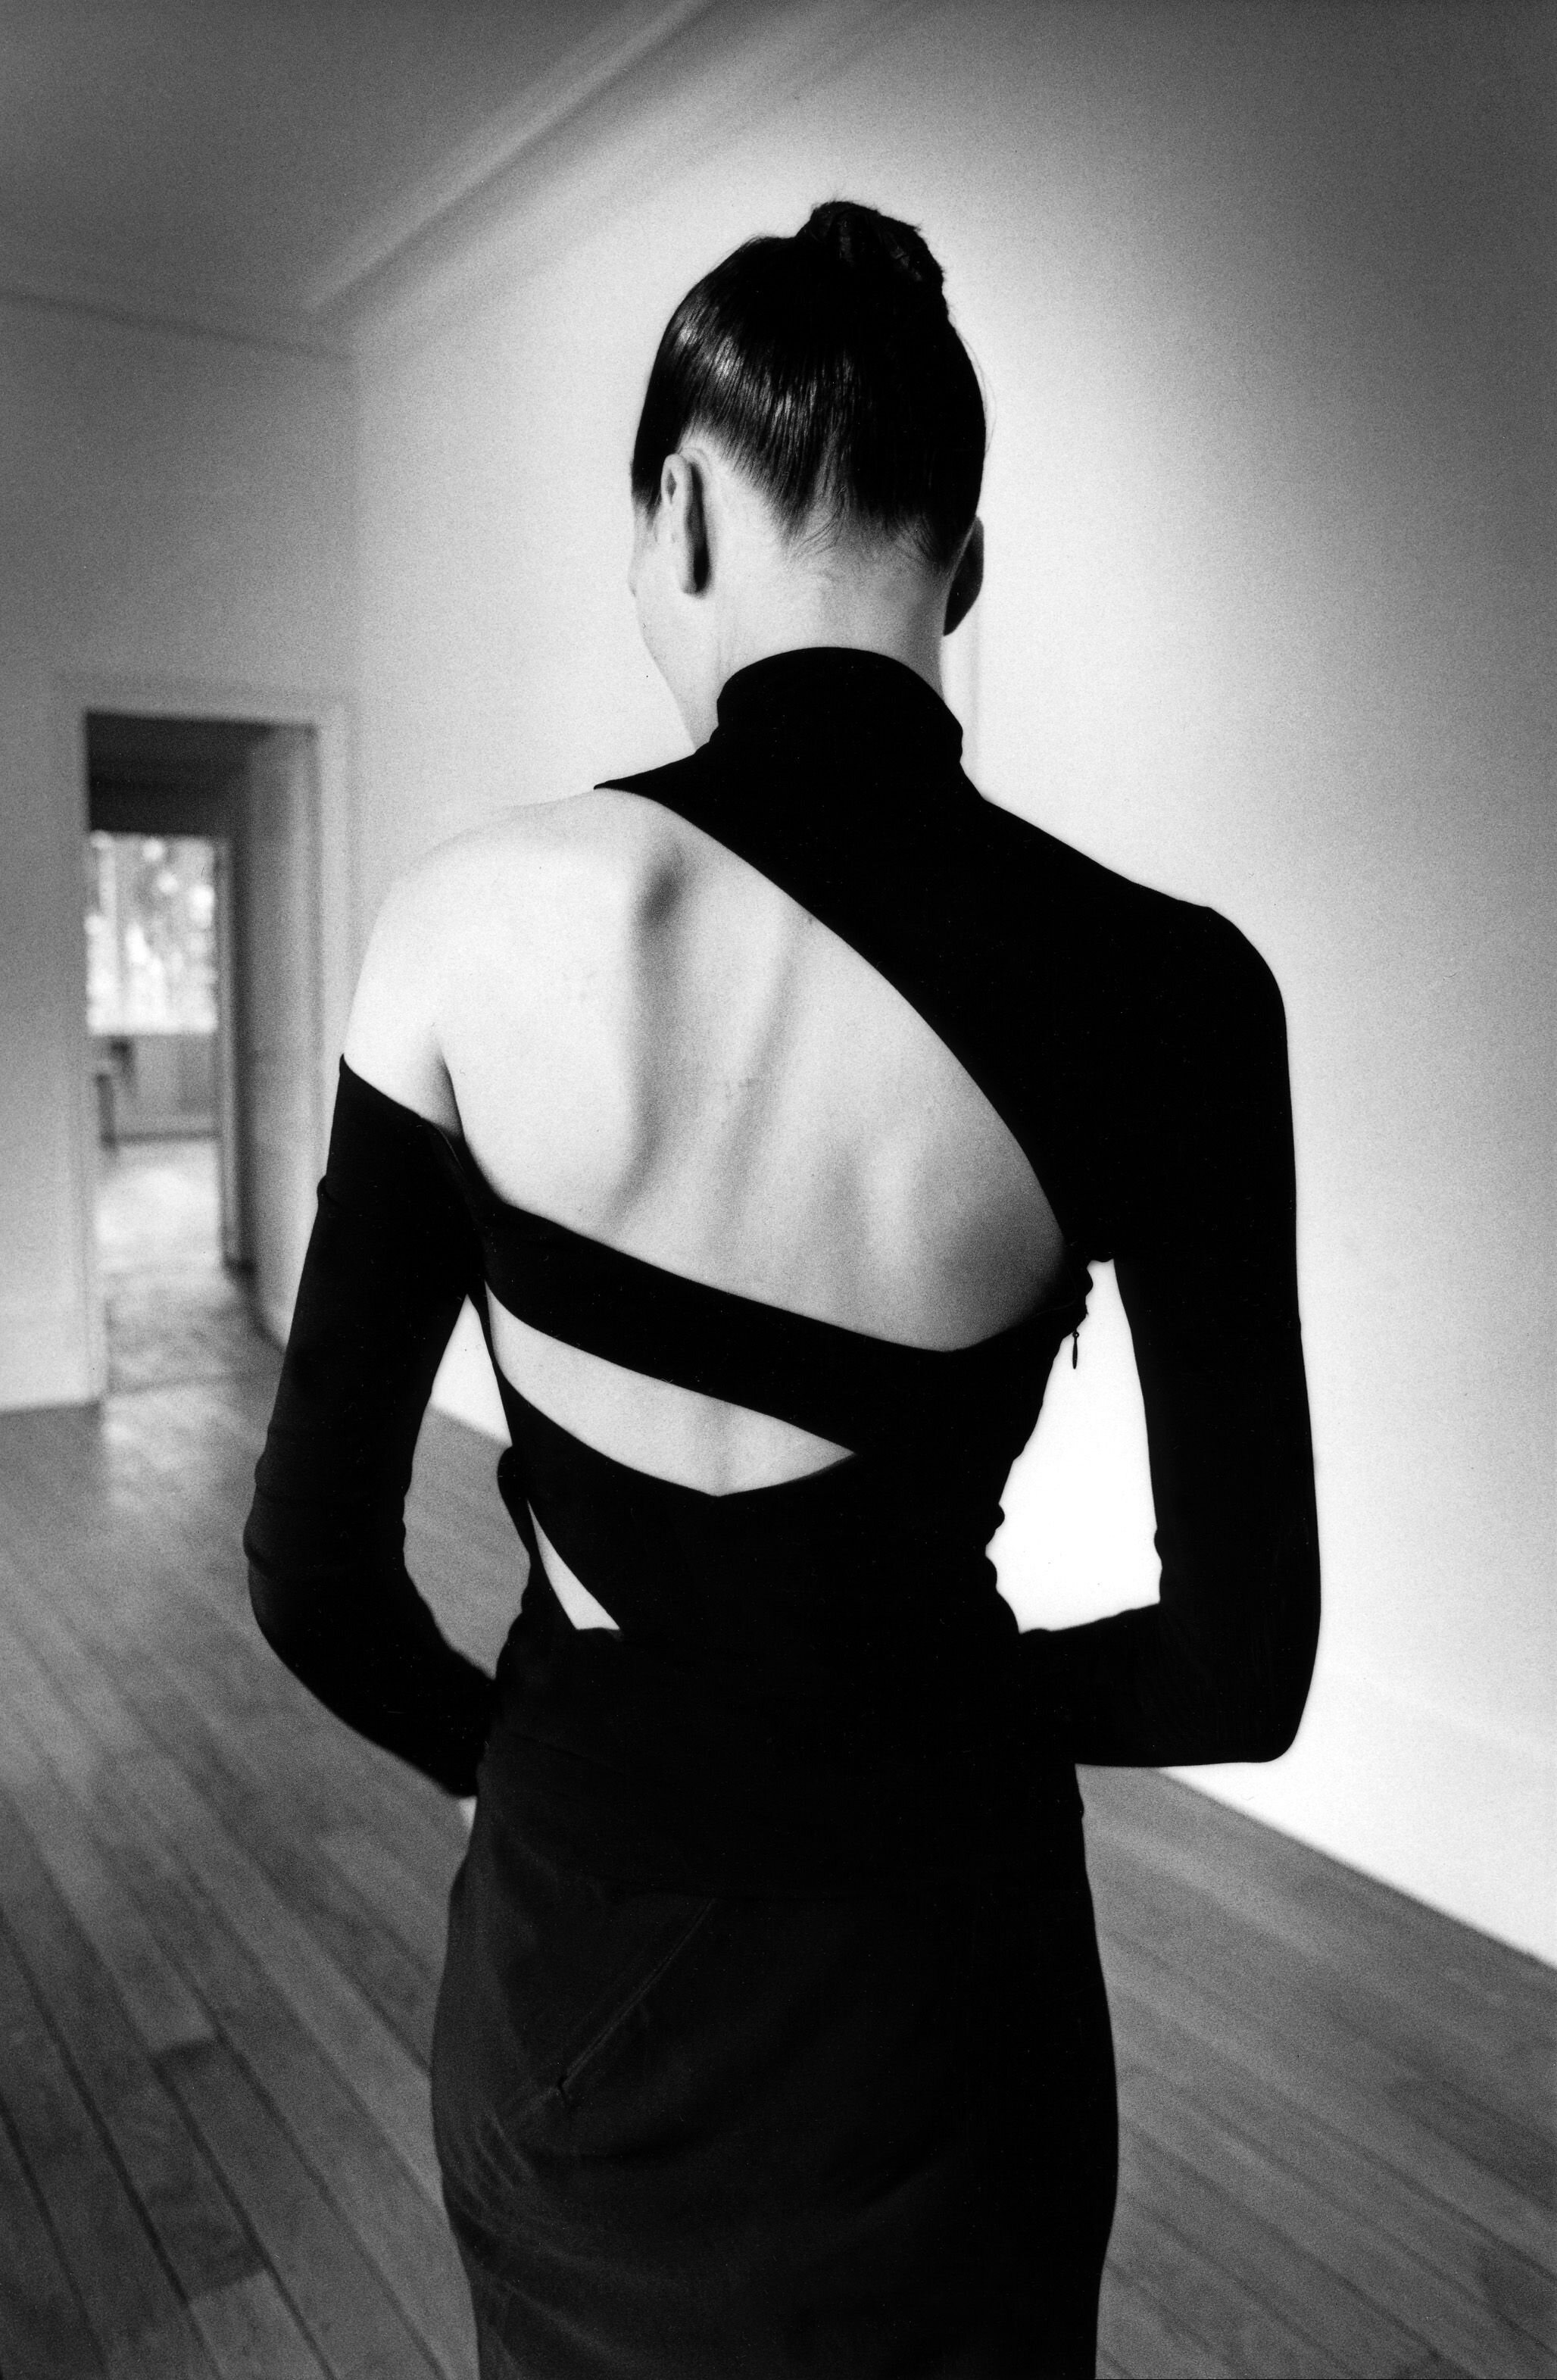 Jeanloup Sieff, Eve from behind, Kim Islinski [Top and skirt Martine Sitbon, published in New York,1997] © Estate of Jeanloup Sieff